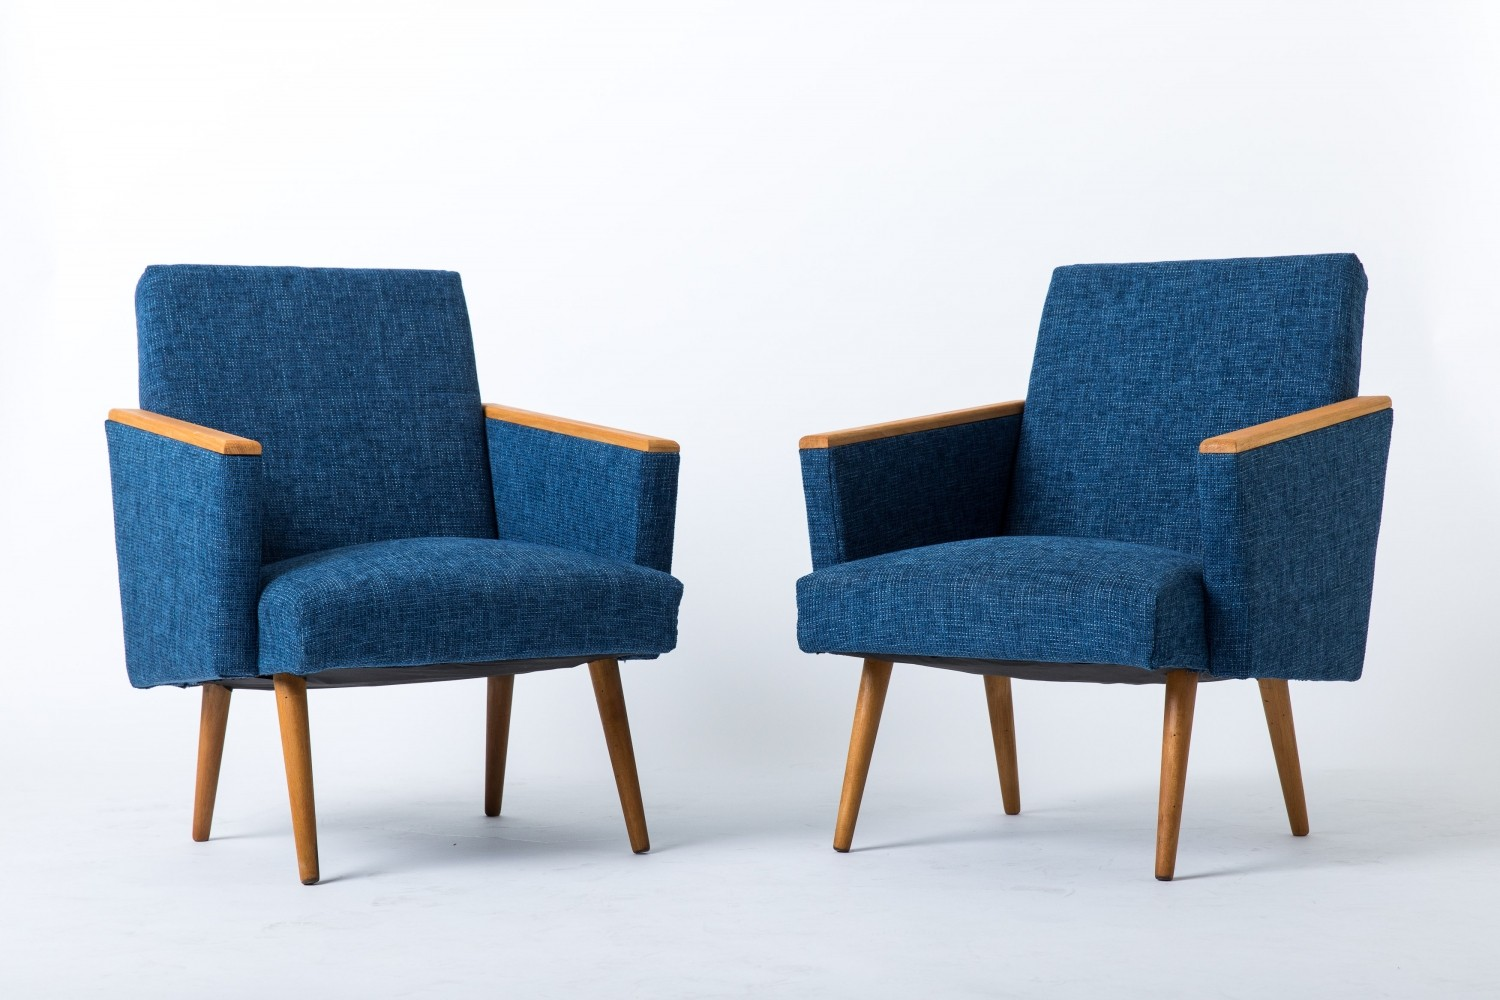 Pair of Club arm chairs by Interier Praha, 1960s